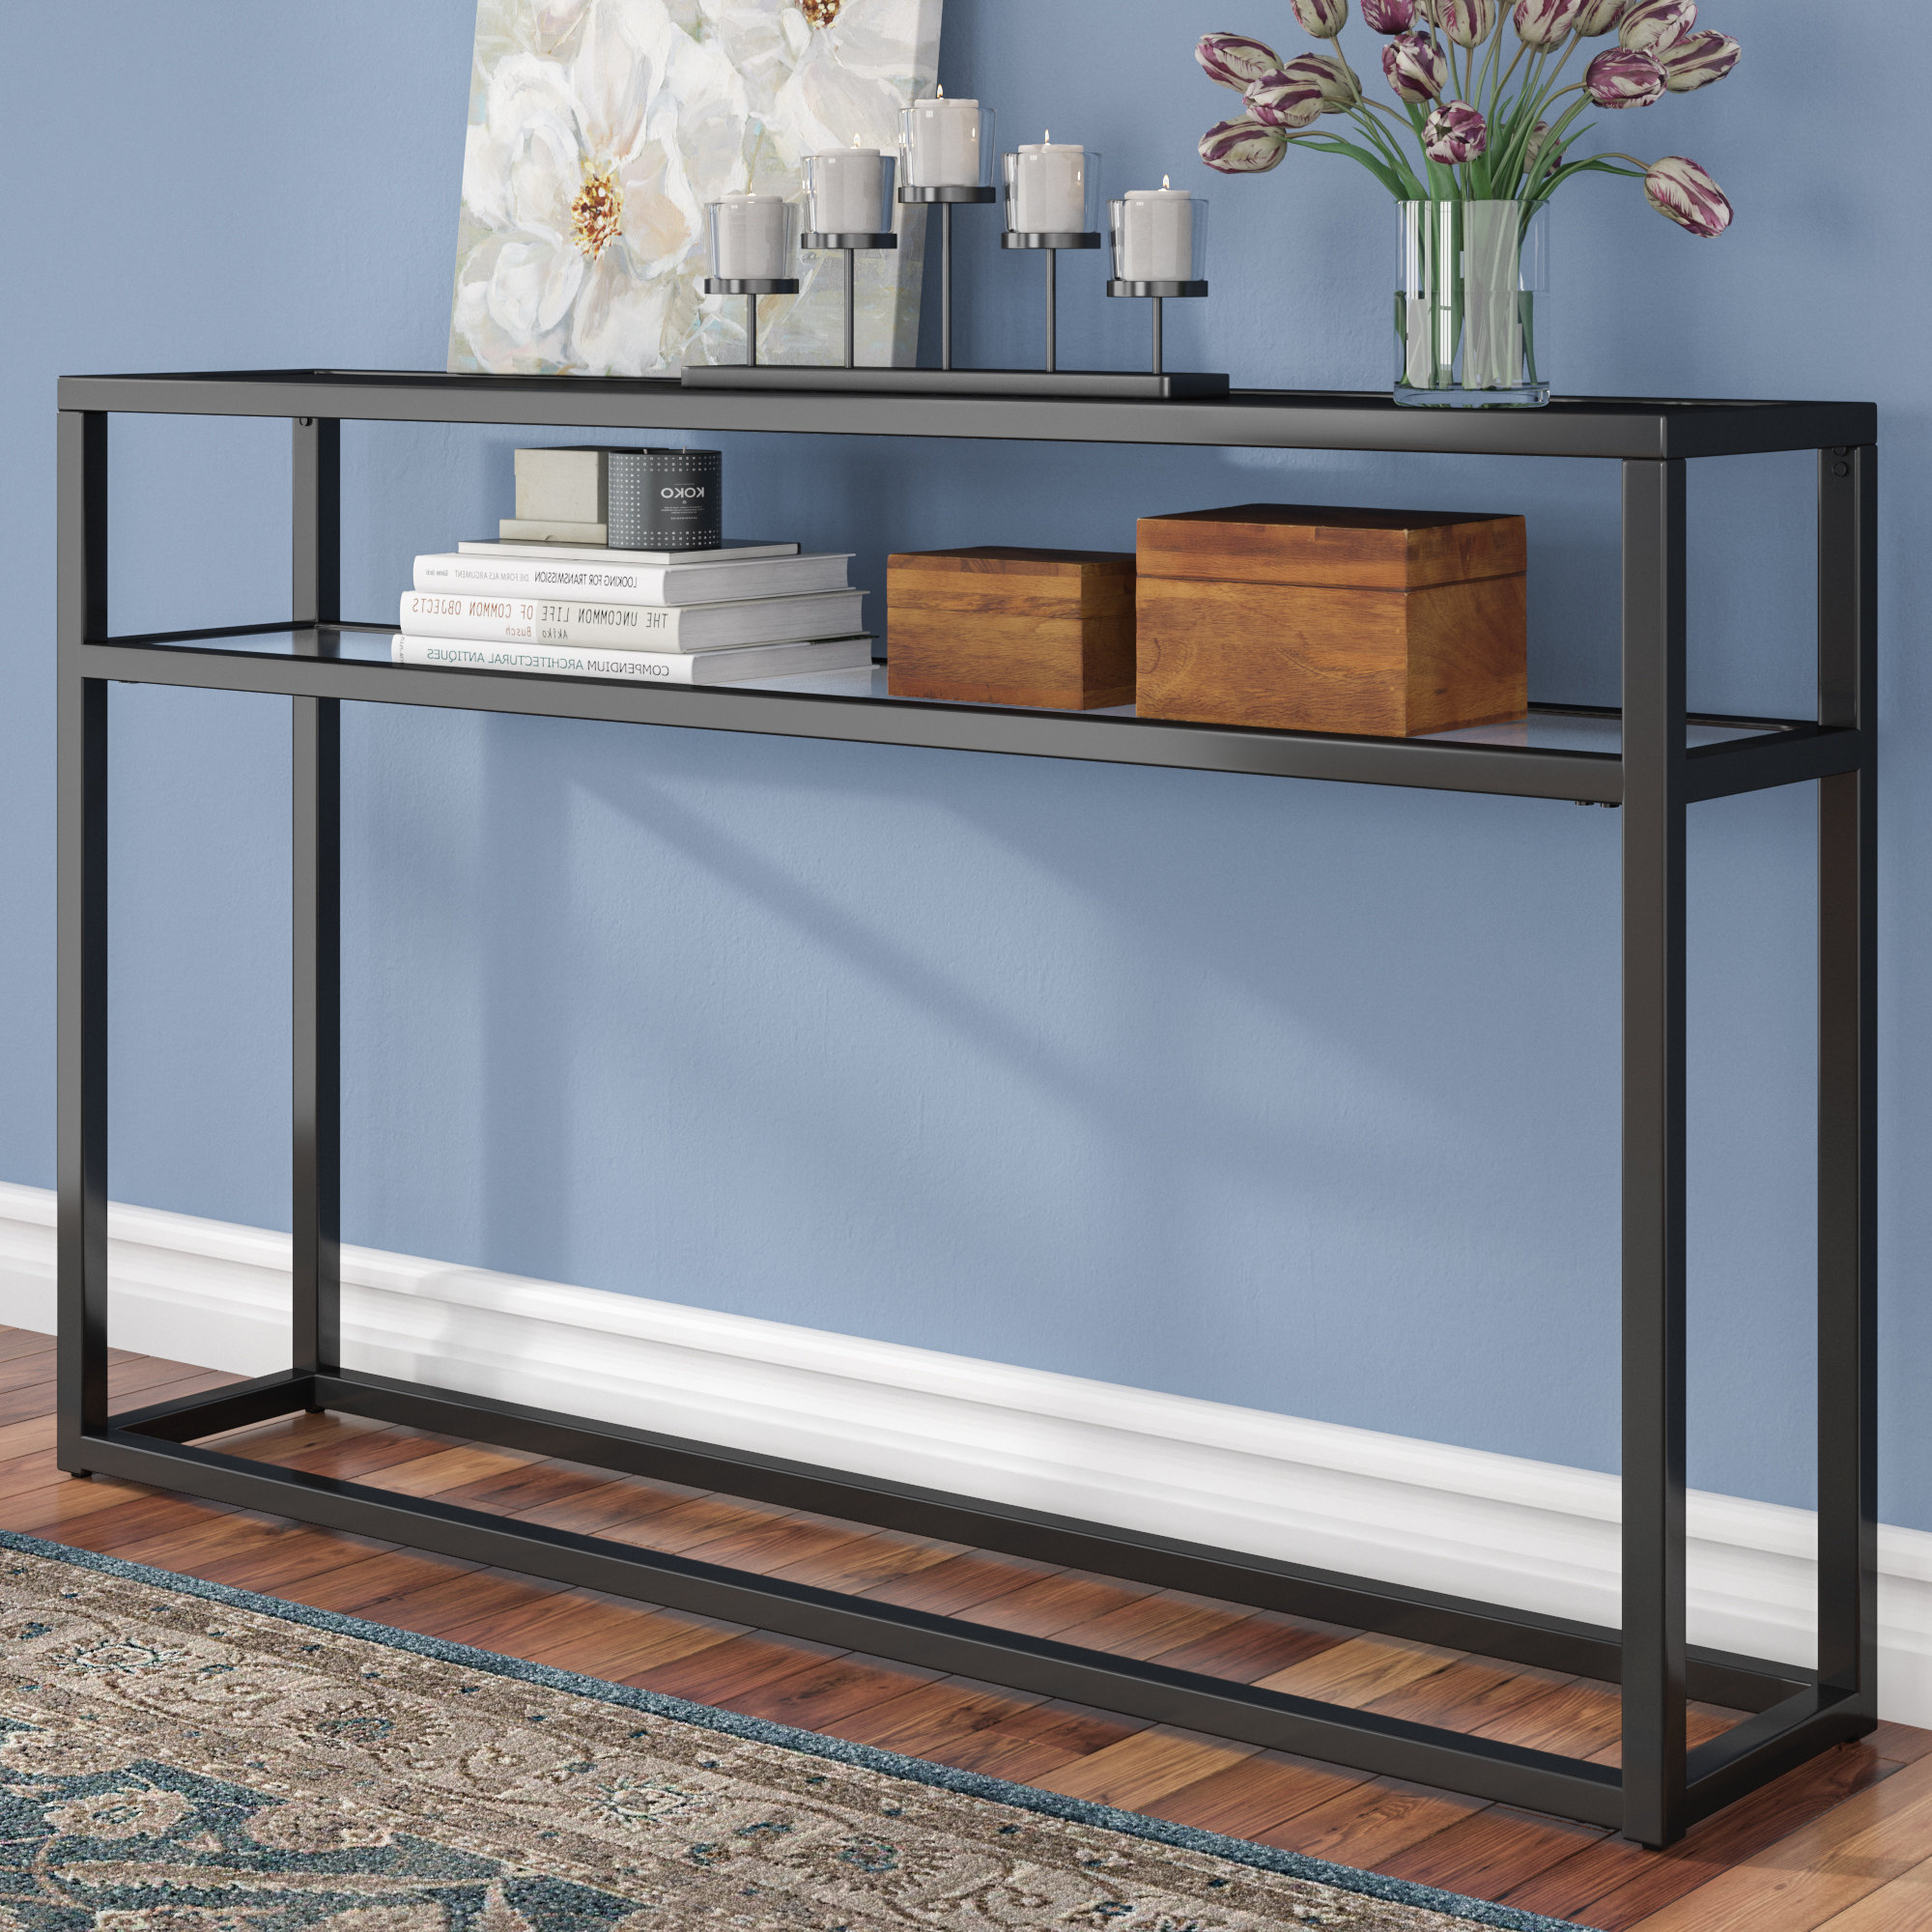 Wayfair Regarding Most Popular Natural Wood Mirrored Media Console Tables (Gallery 16 of 20)